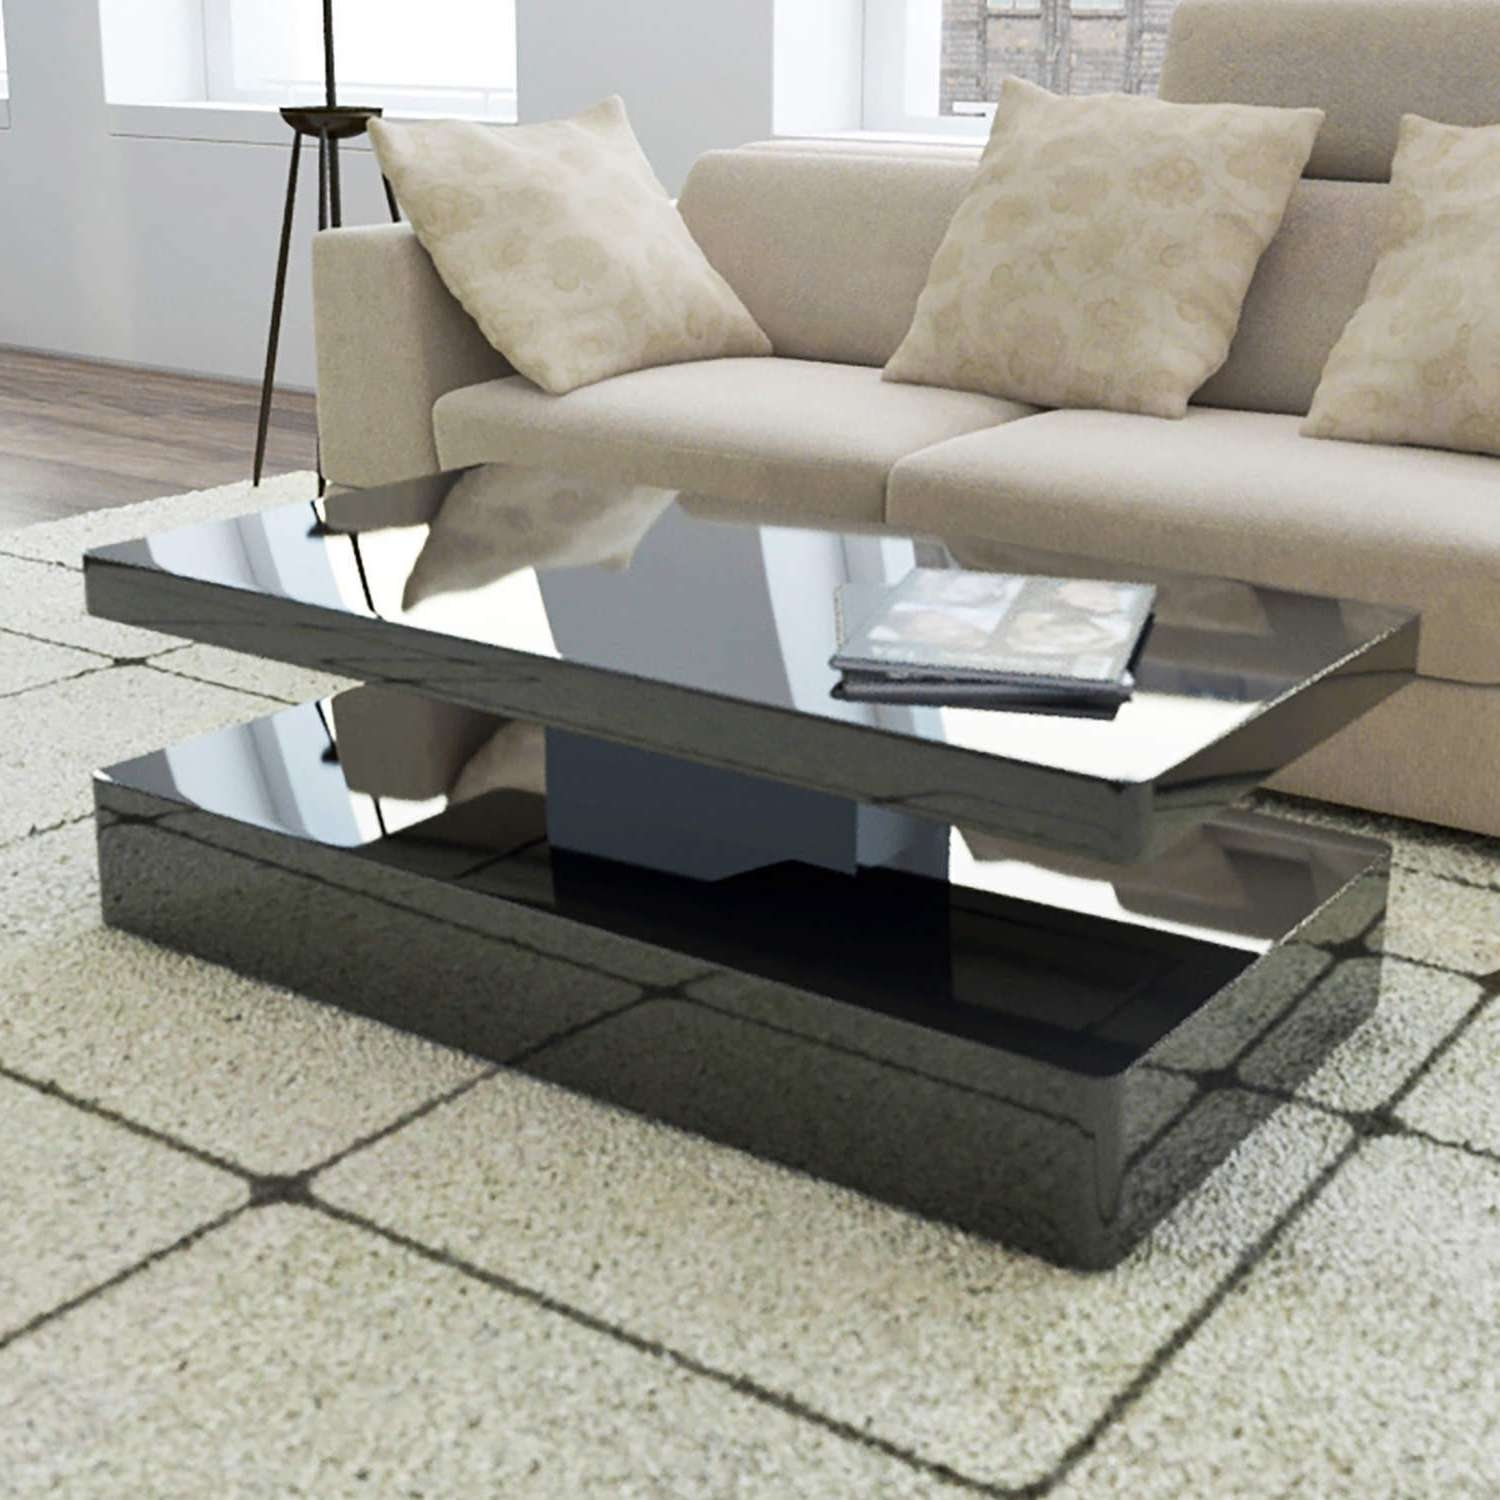 Tiffany Black High Gloss Rectangular Coffee Table With Led With Regard To Most Recent High Gloss Coffee Tables (View 16 of 20)